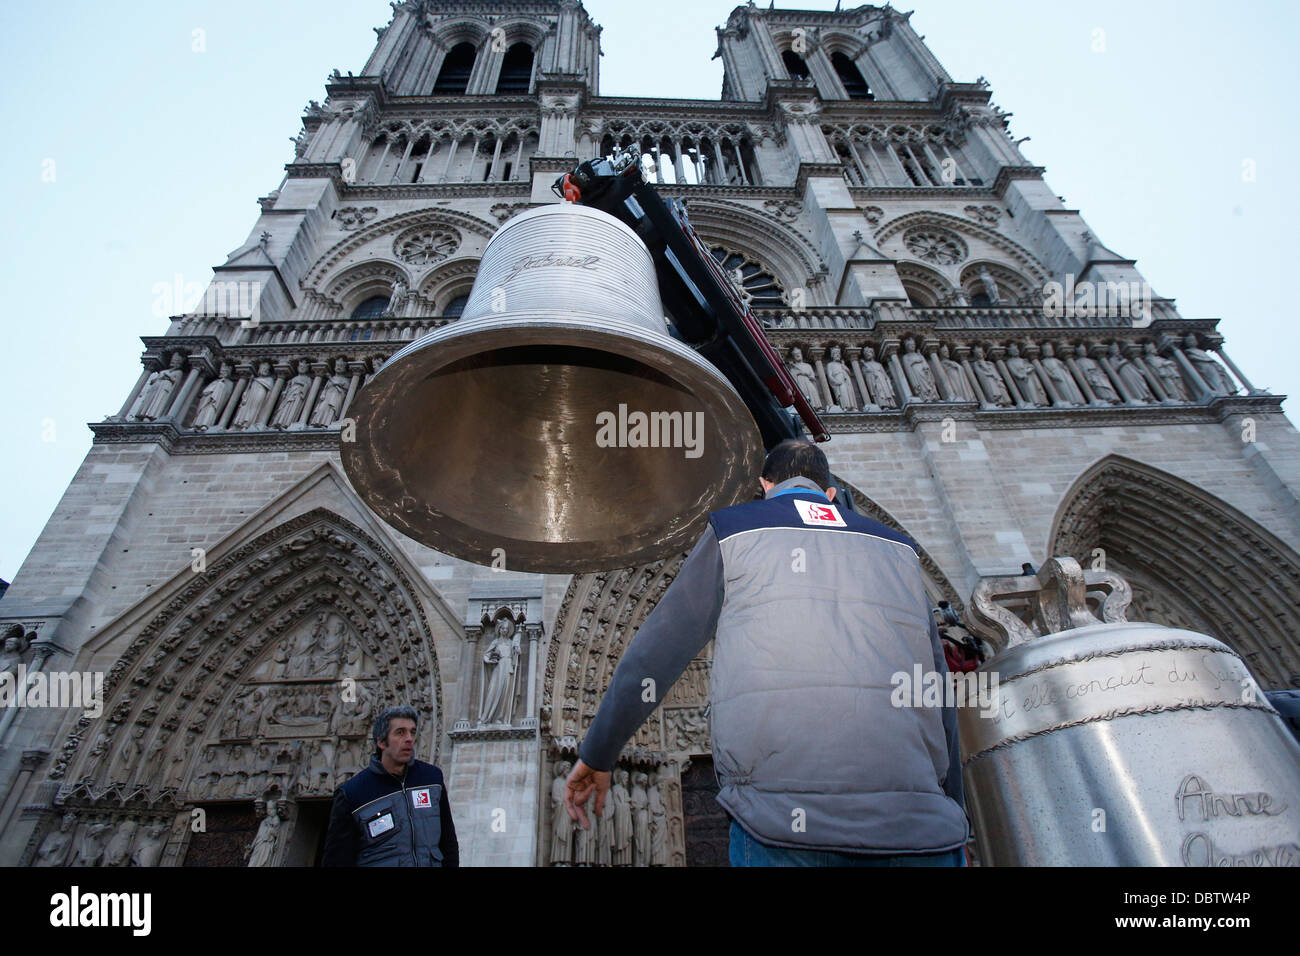 Arrival of the new bell chime on the 850th anniversary, Notre-Dame de Paris, Paris, France, Europe Stock Photo